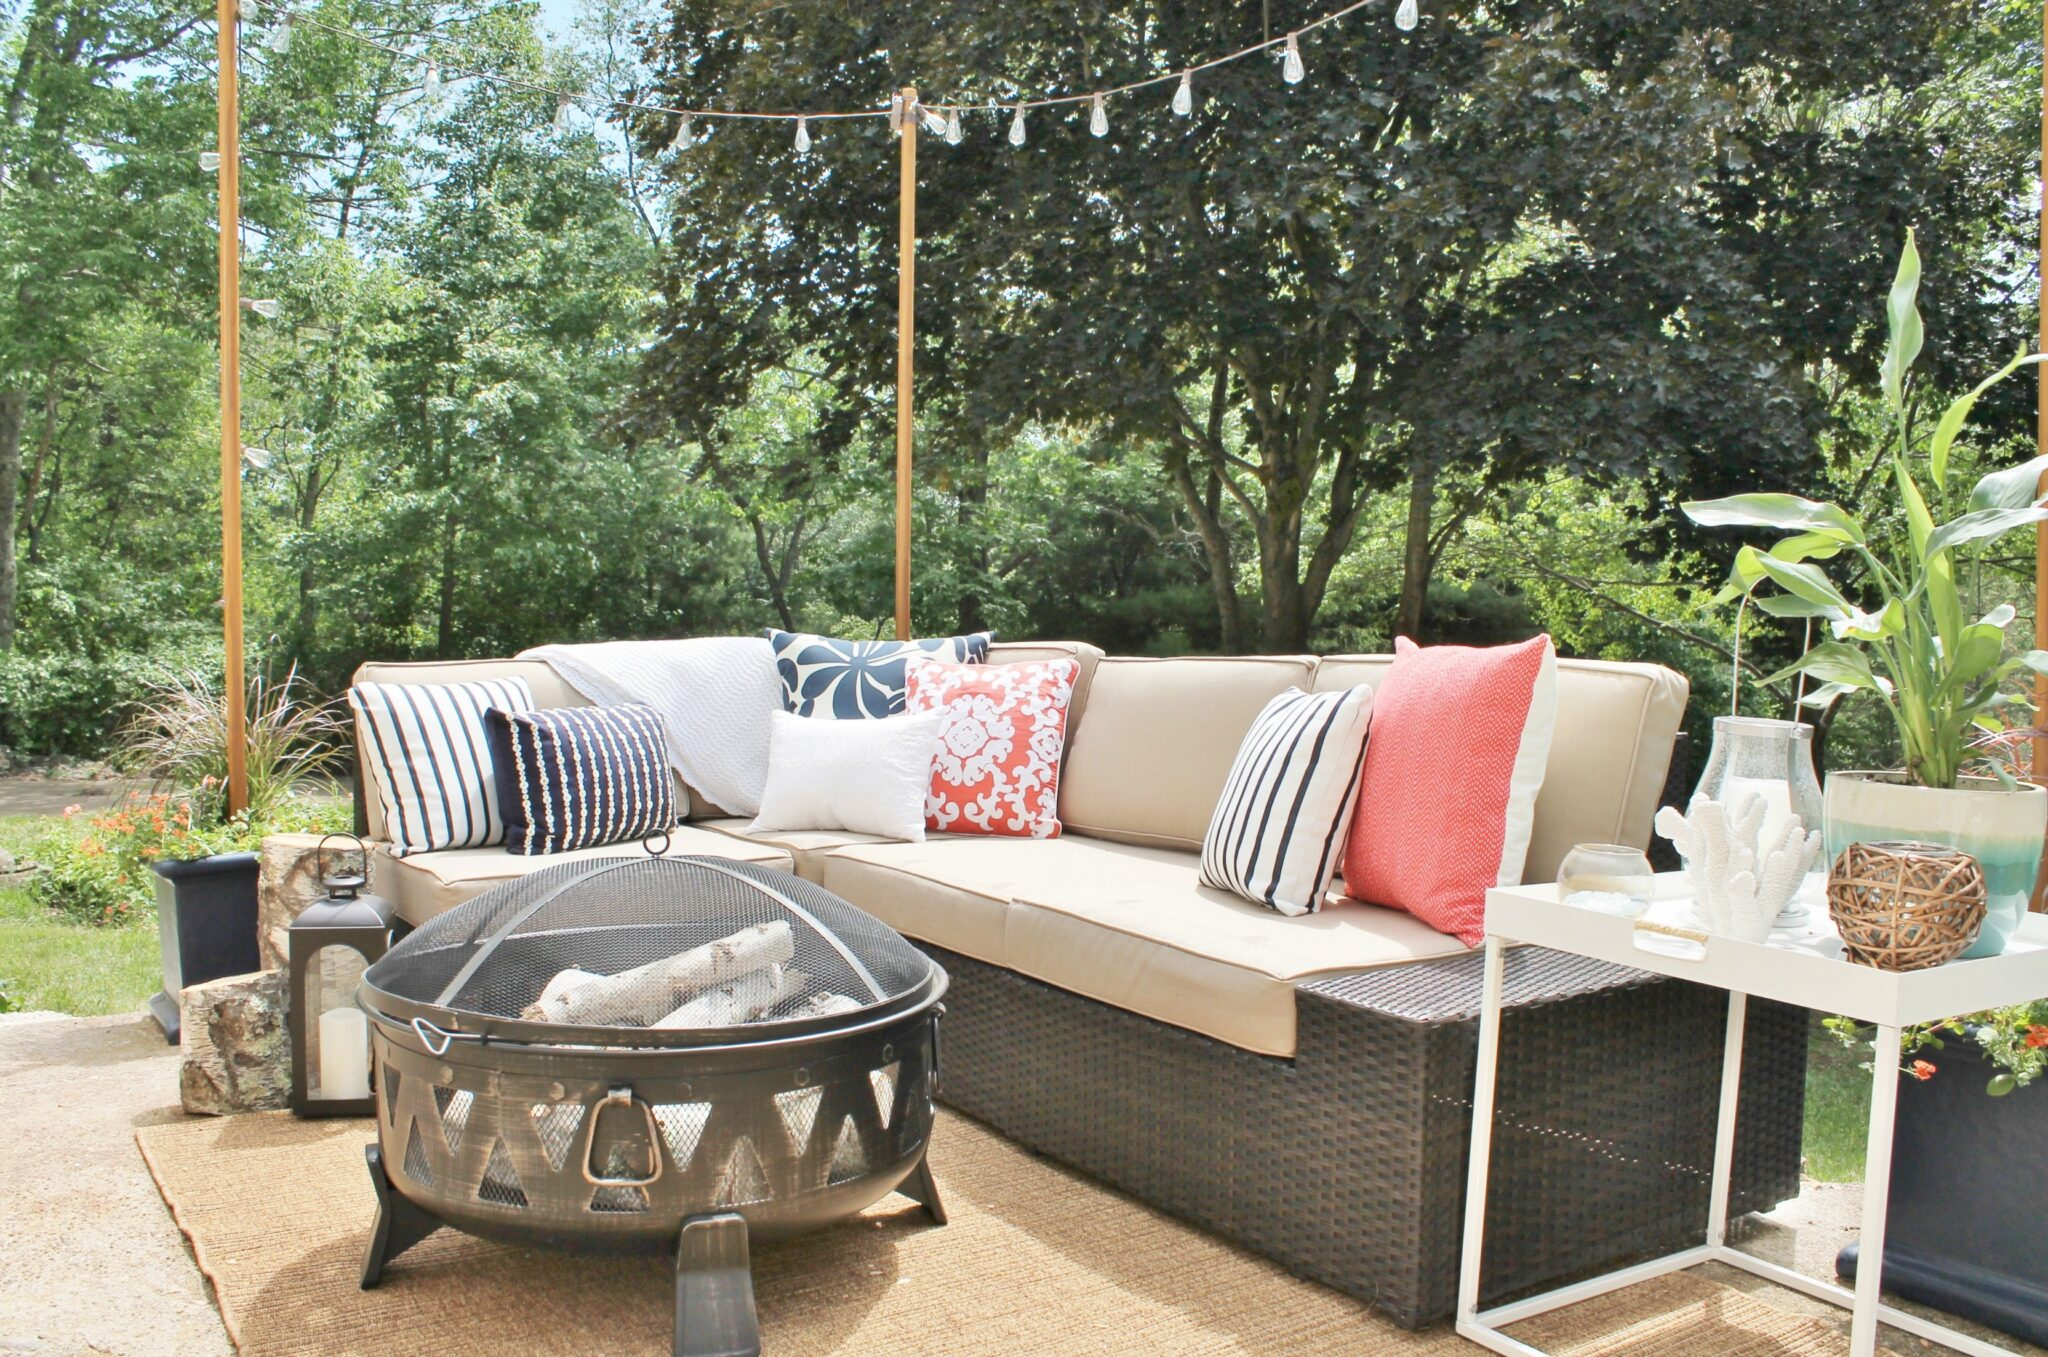 patio string chair plywood lounge and ottoman diy outdoor light poles city farmhouse